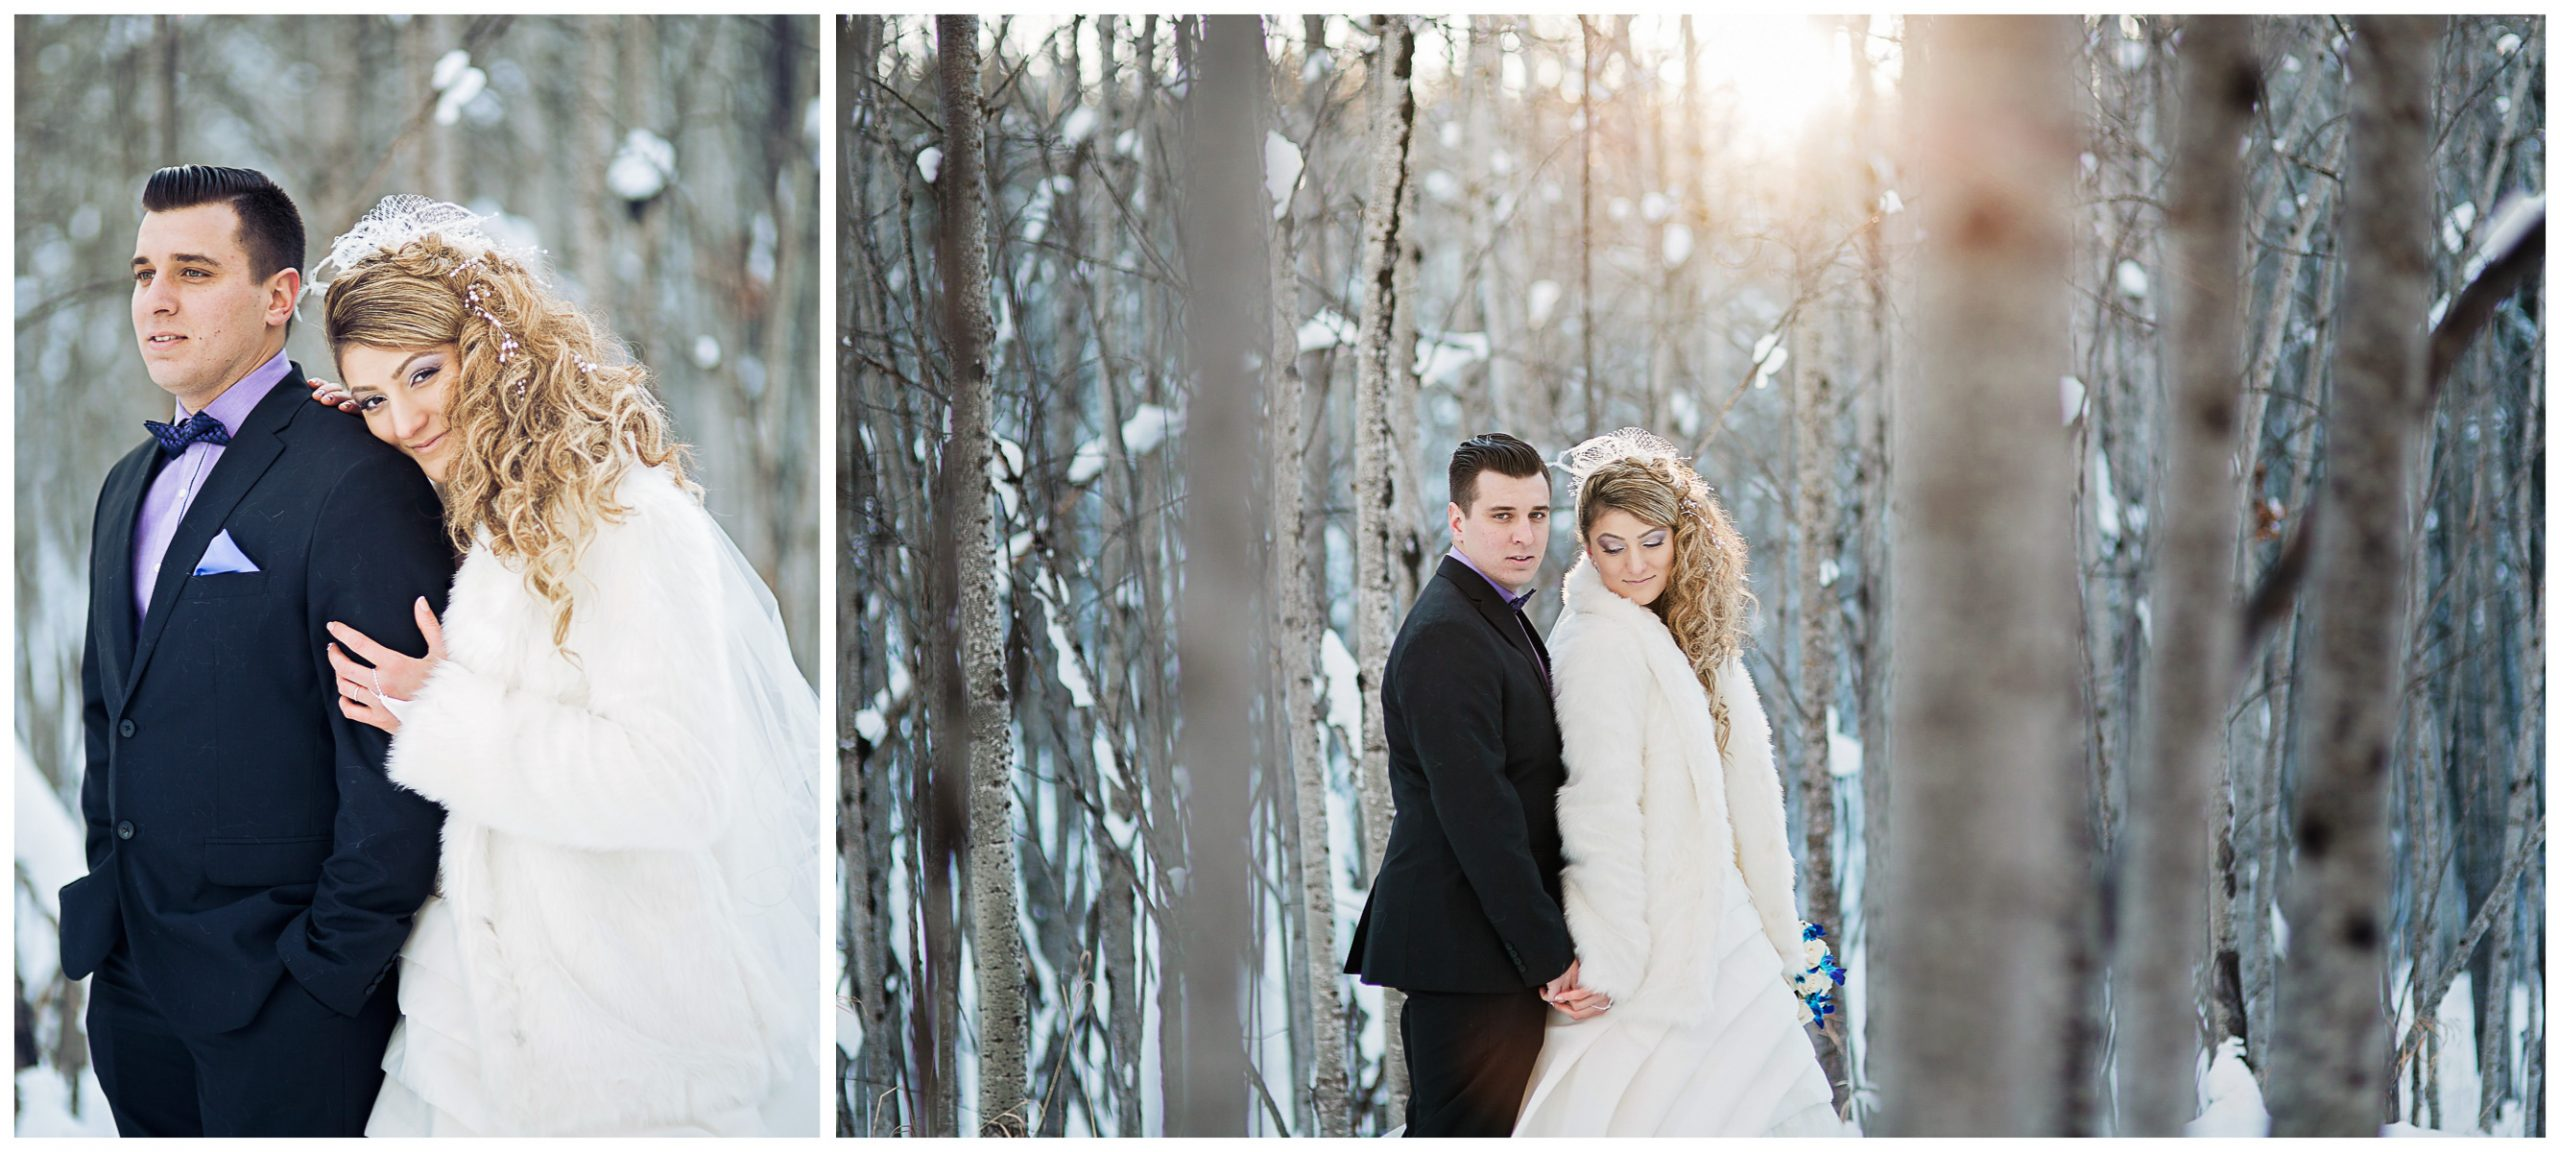 Calgary wedding photographer affordable best